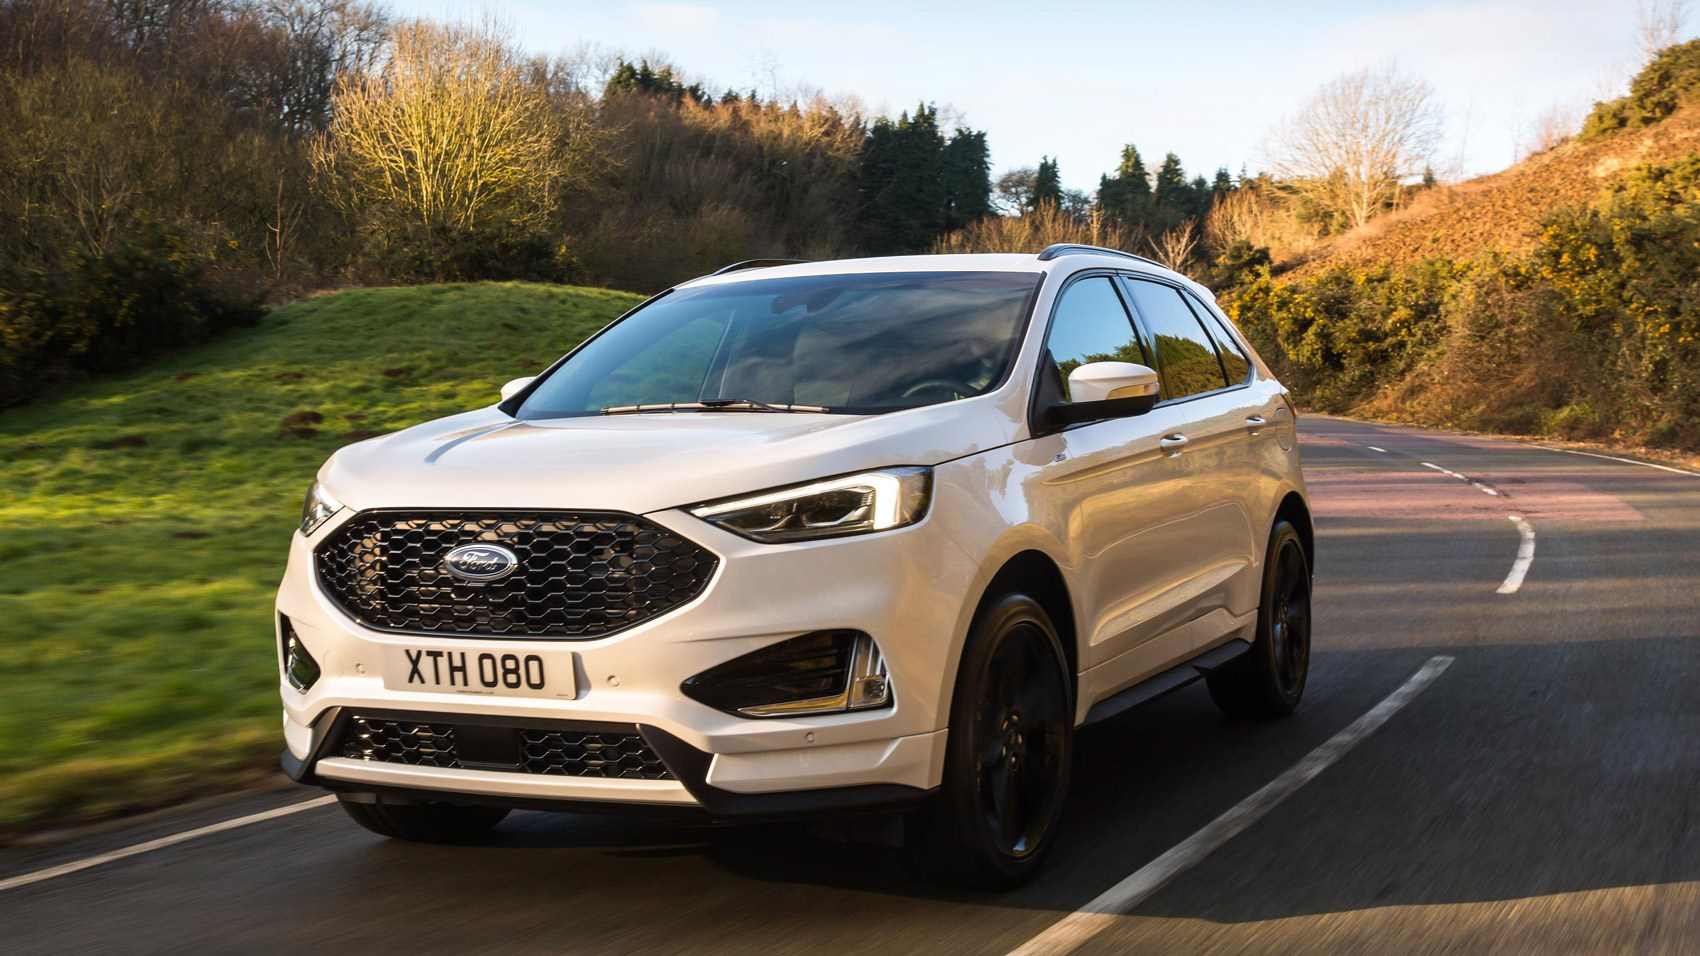 Review likewise Ford Edge 2019 Price Specs Interior And St Details also Practicality furthermore Bmw Z4 M Coupe Checkpoints moreover Porsche Macan S. on volkswagen model 3